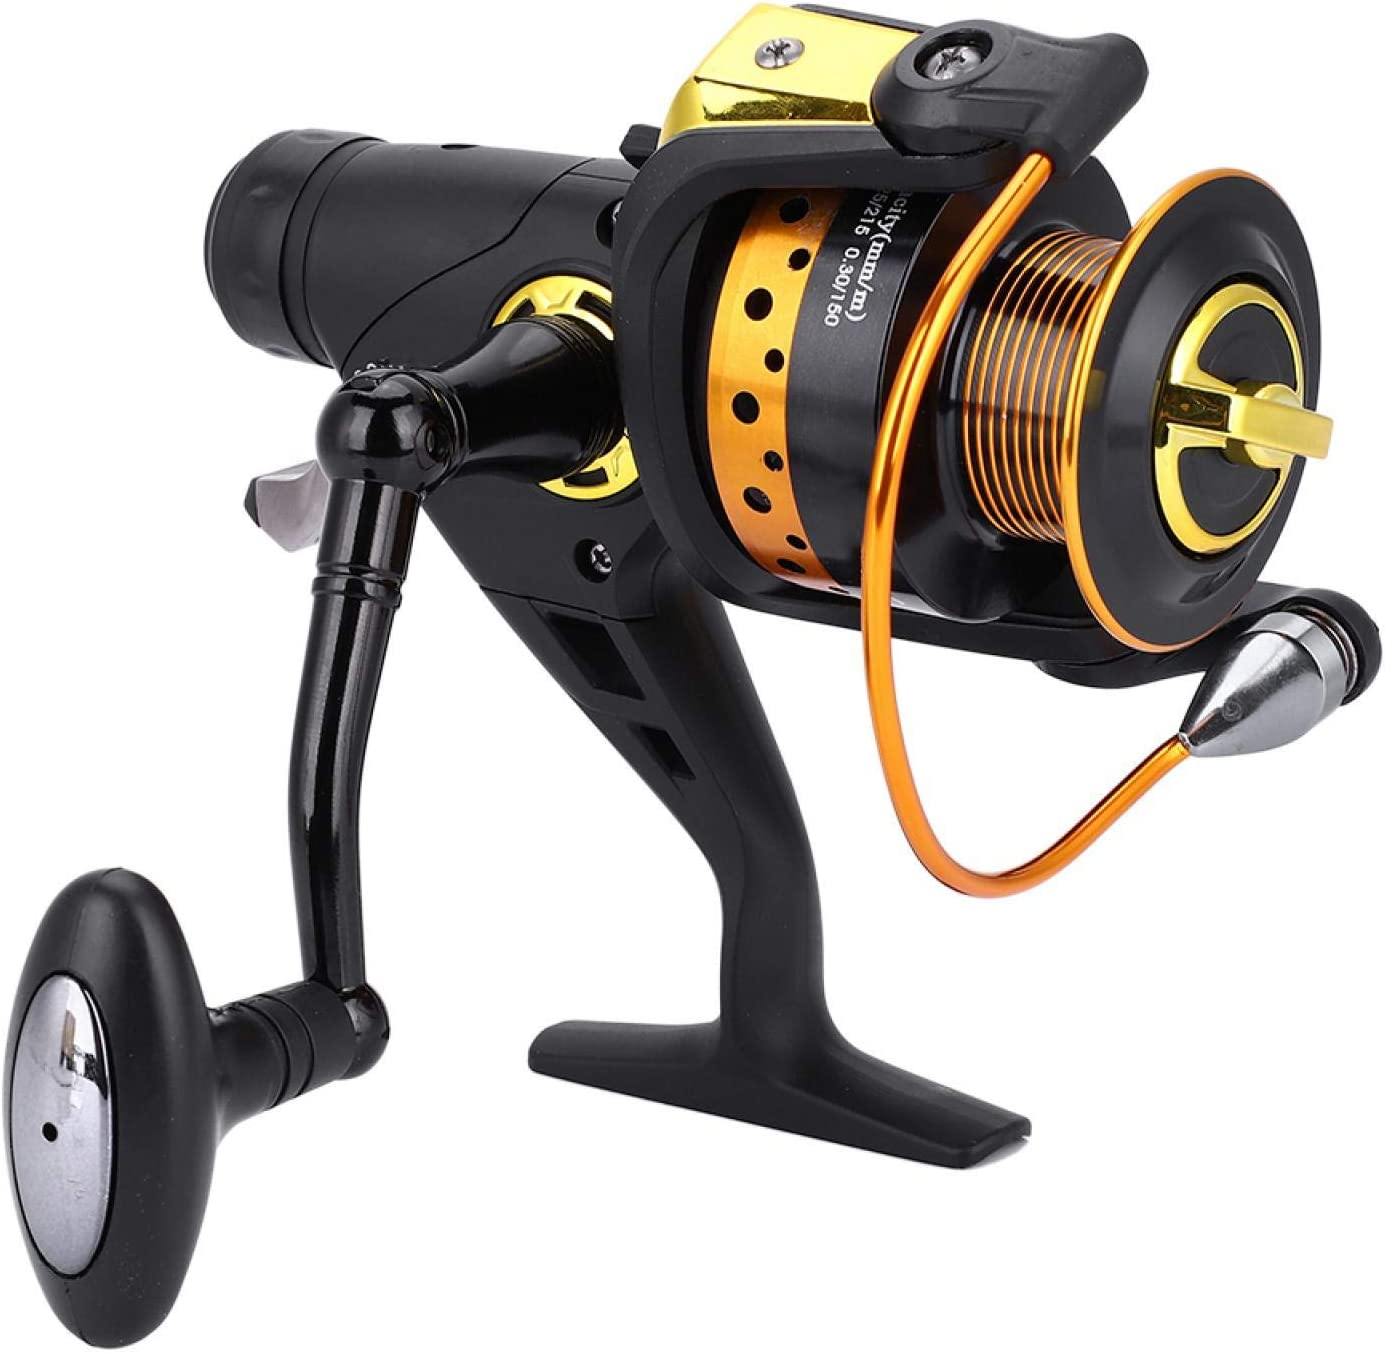 Gaeirt Spinning Reel Product Smooth Surface KV3000-8 Spool Wire Max 54% OFF Aluminum